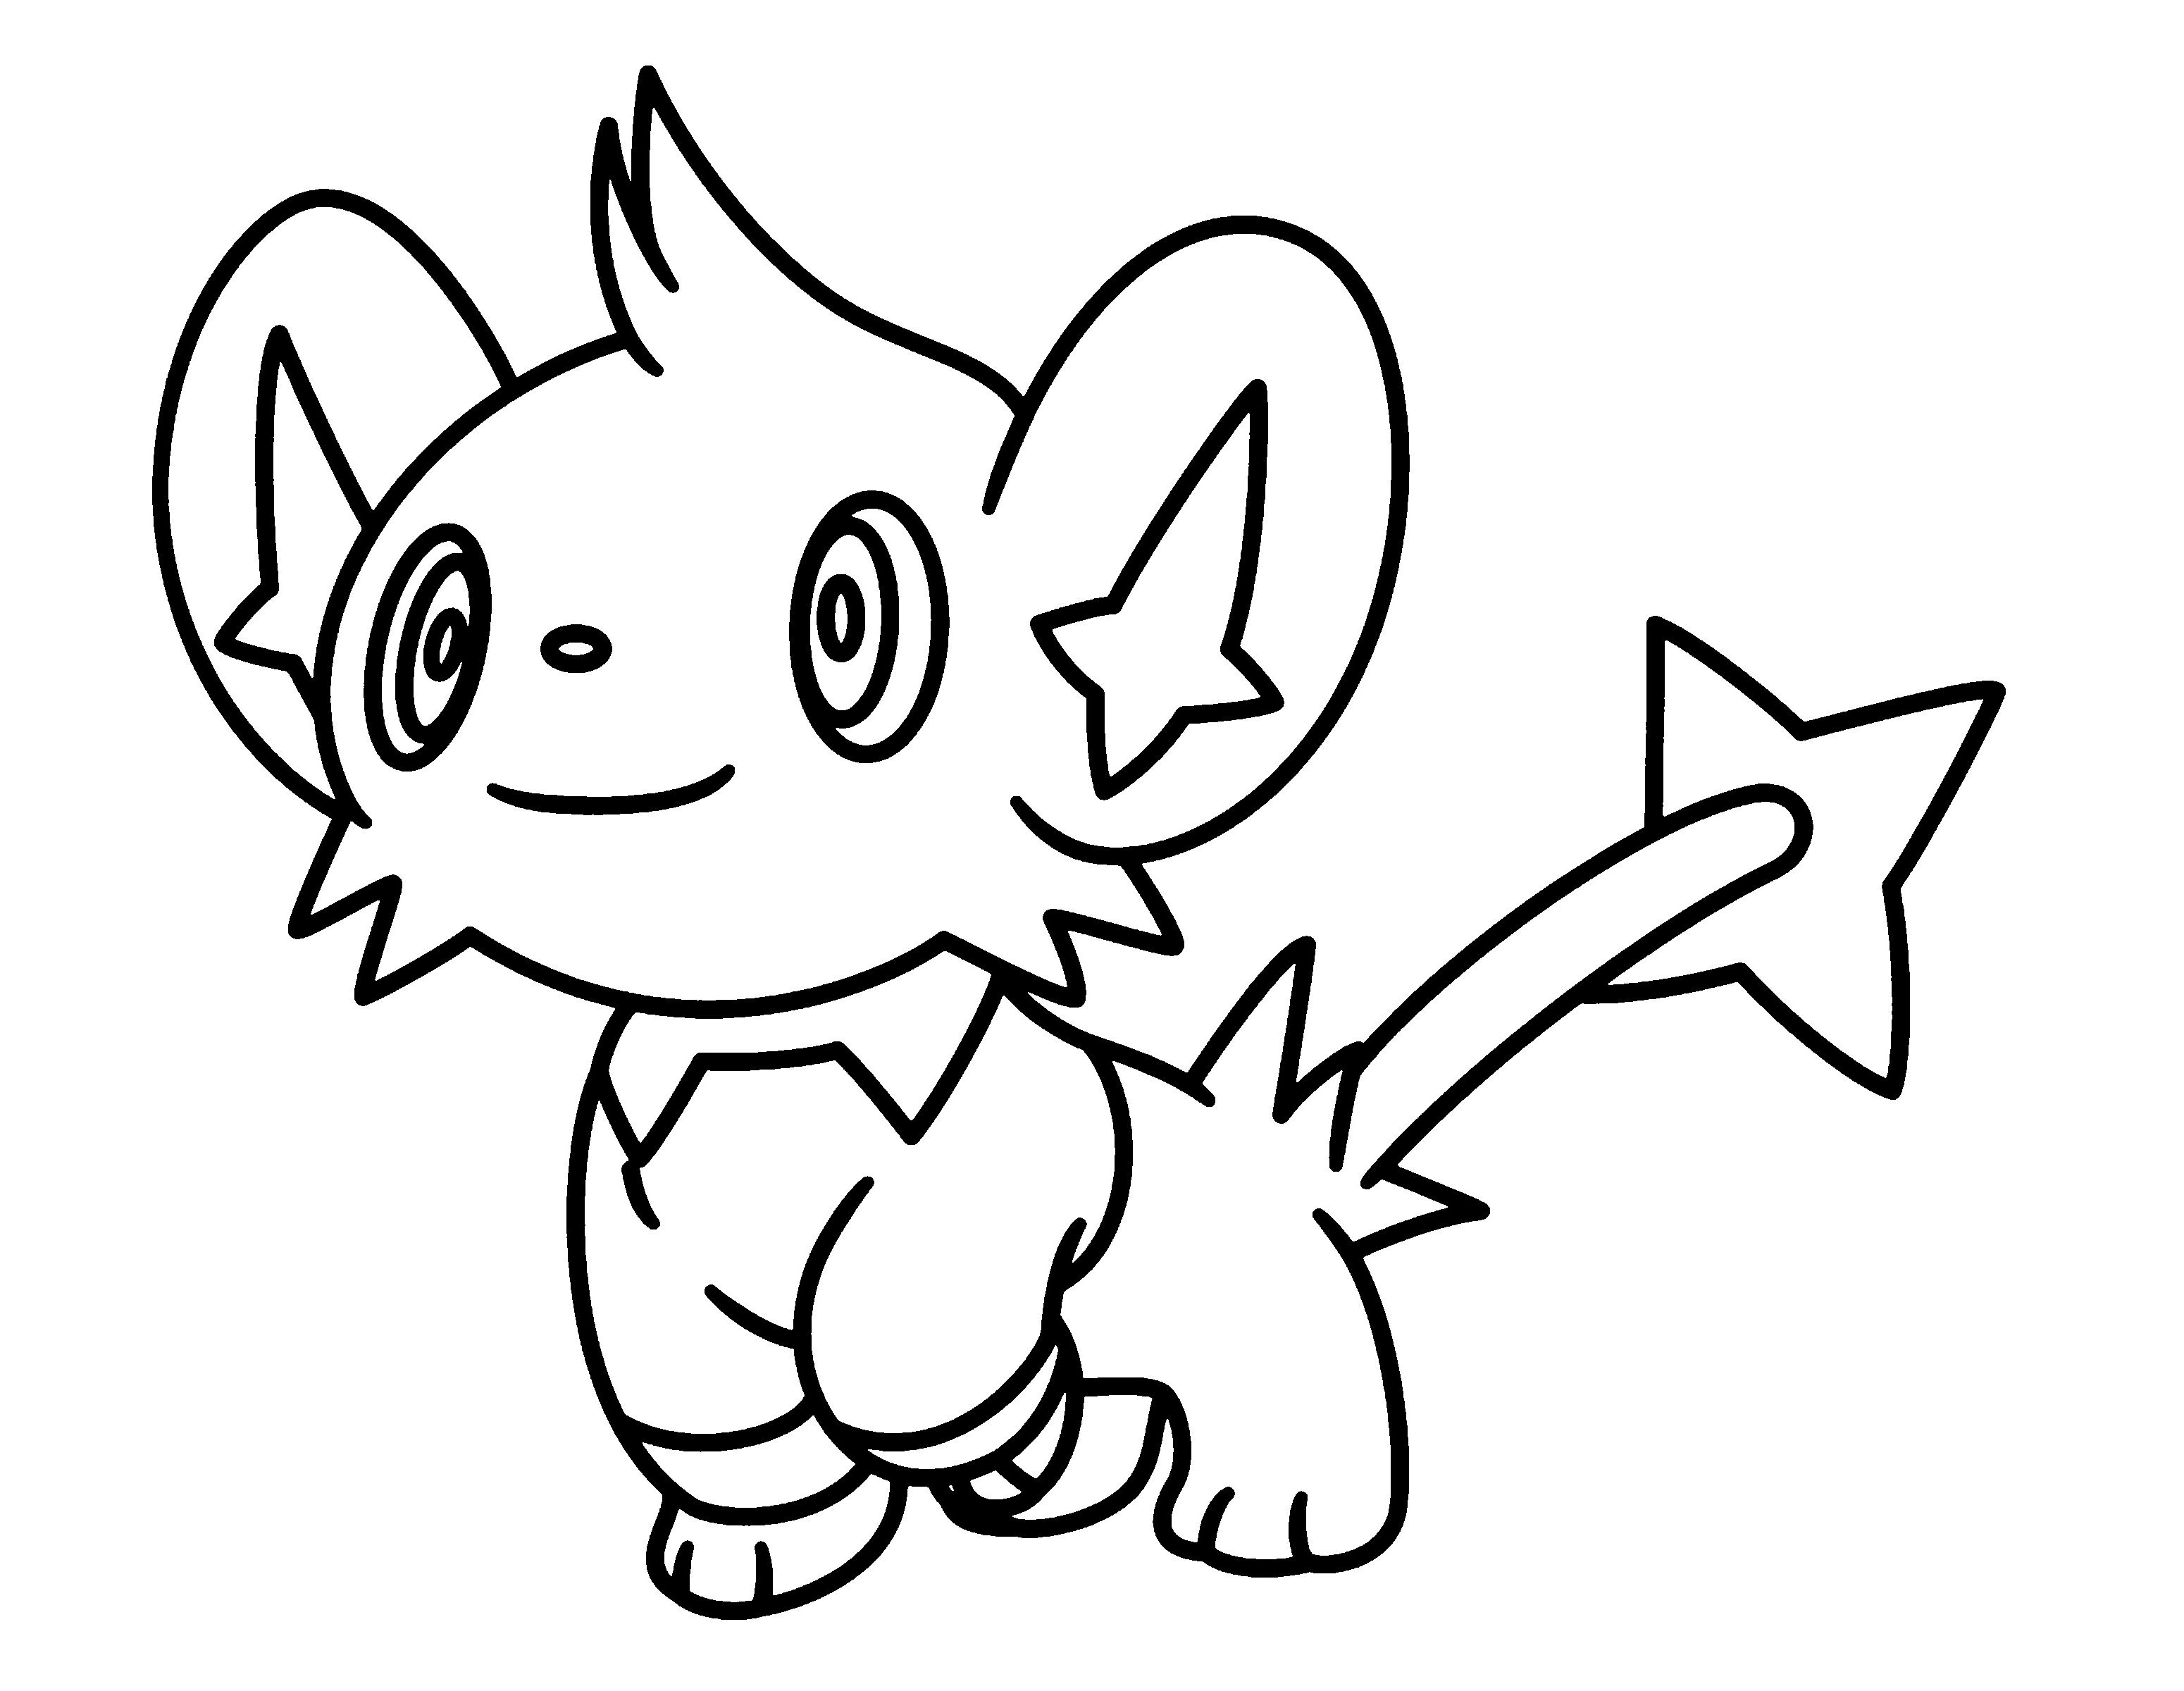 Pokemon Coloring Pages For Kids Allowed For You To Print Description From 3d Pictures Picphotos Pokemon Coloring Pikachu Coloring Page Pokemon Coloring Pages [ 2400 x 3100 Pixel ]